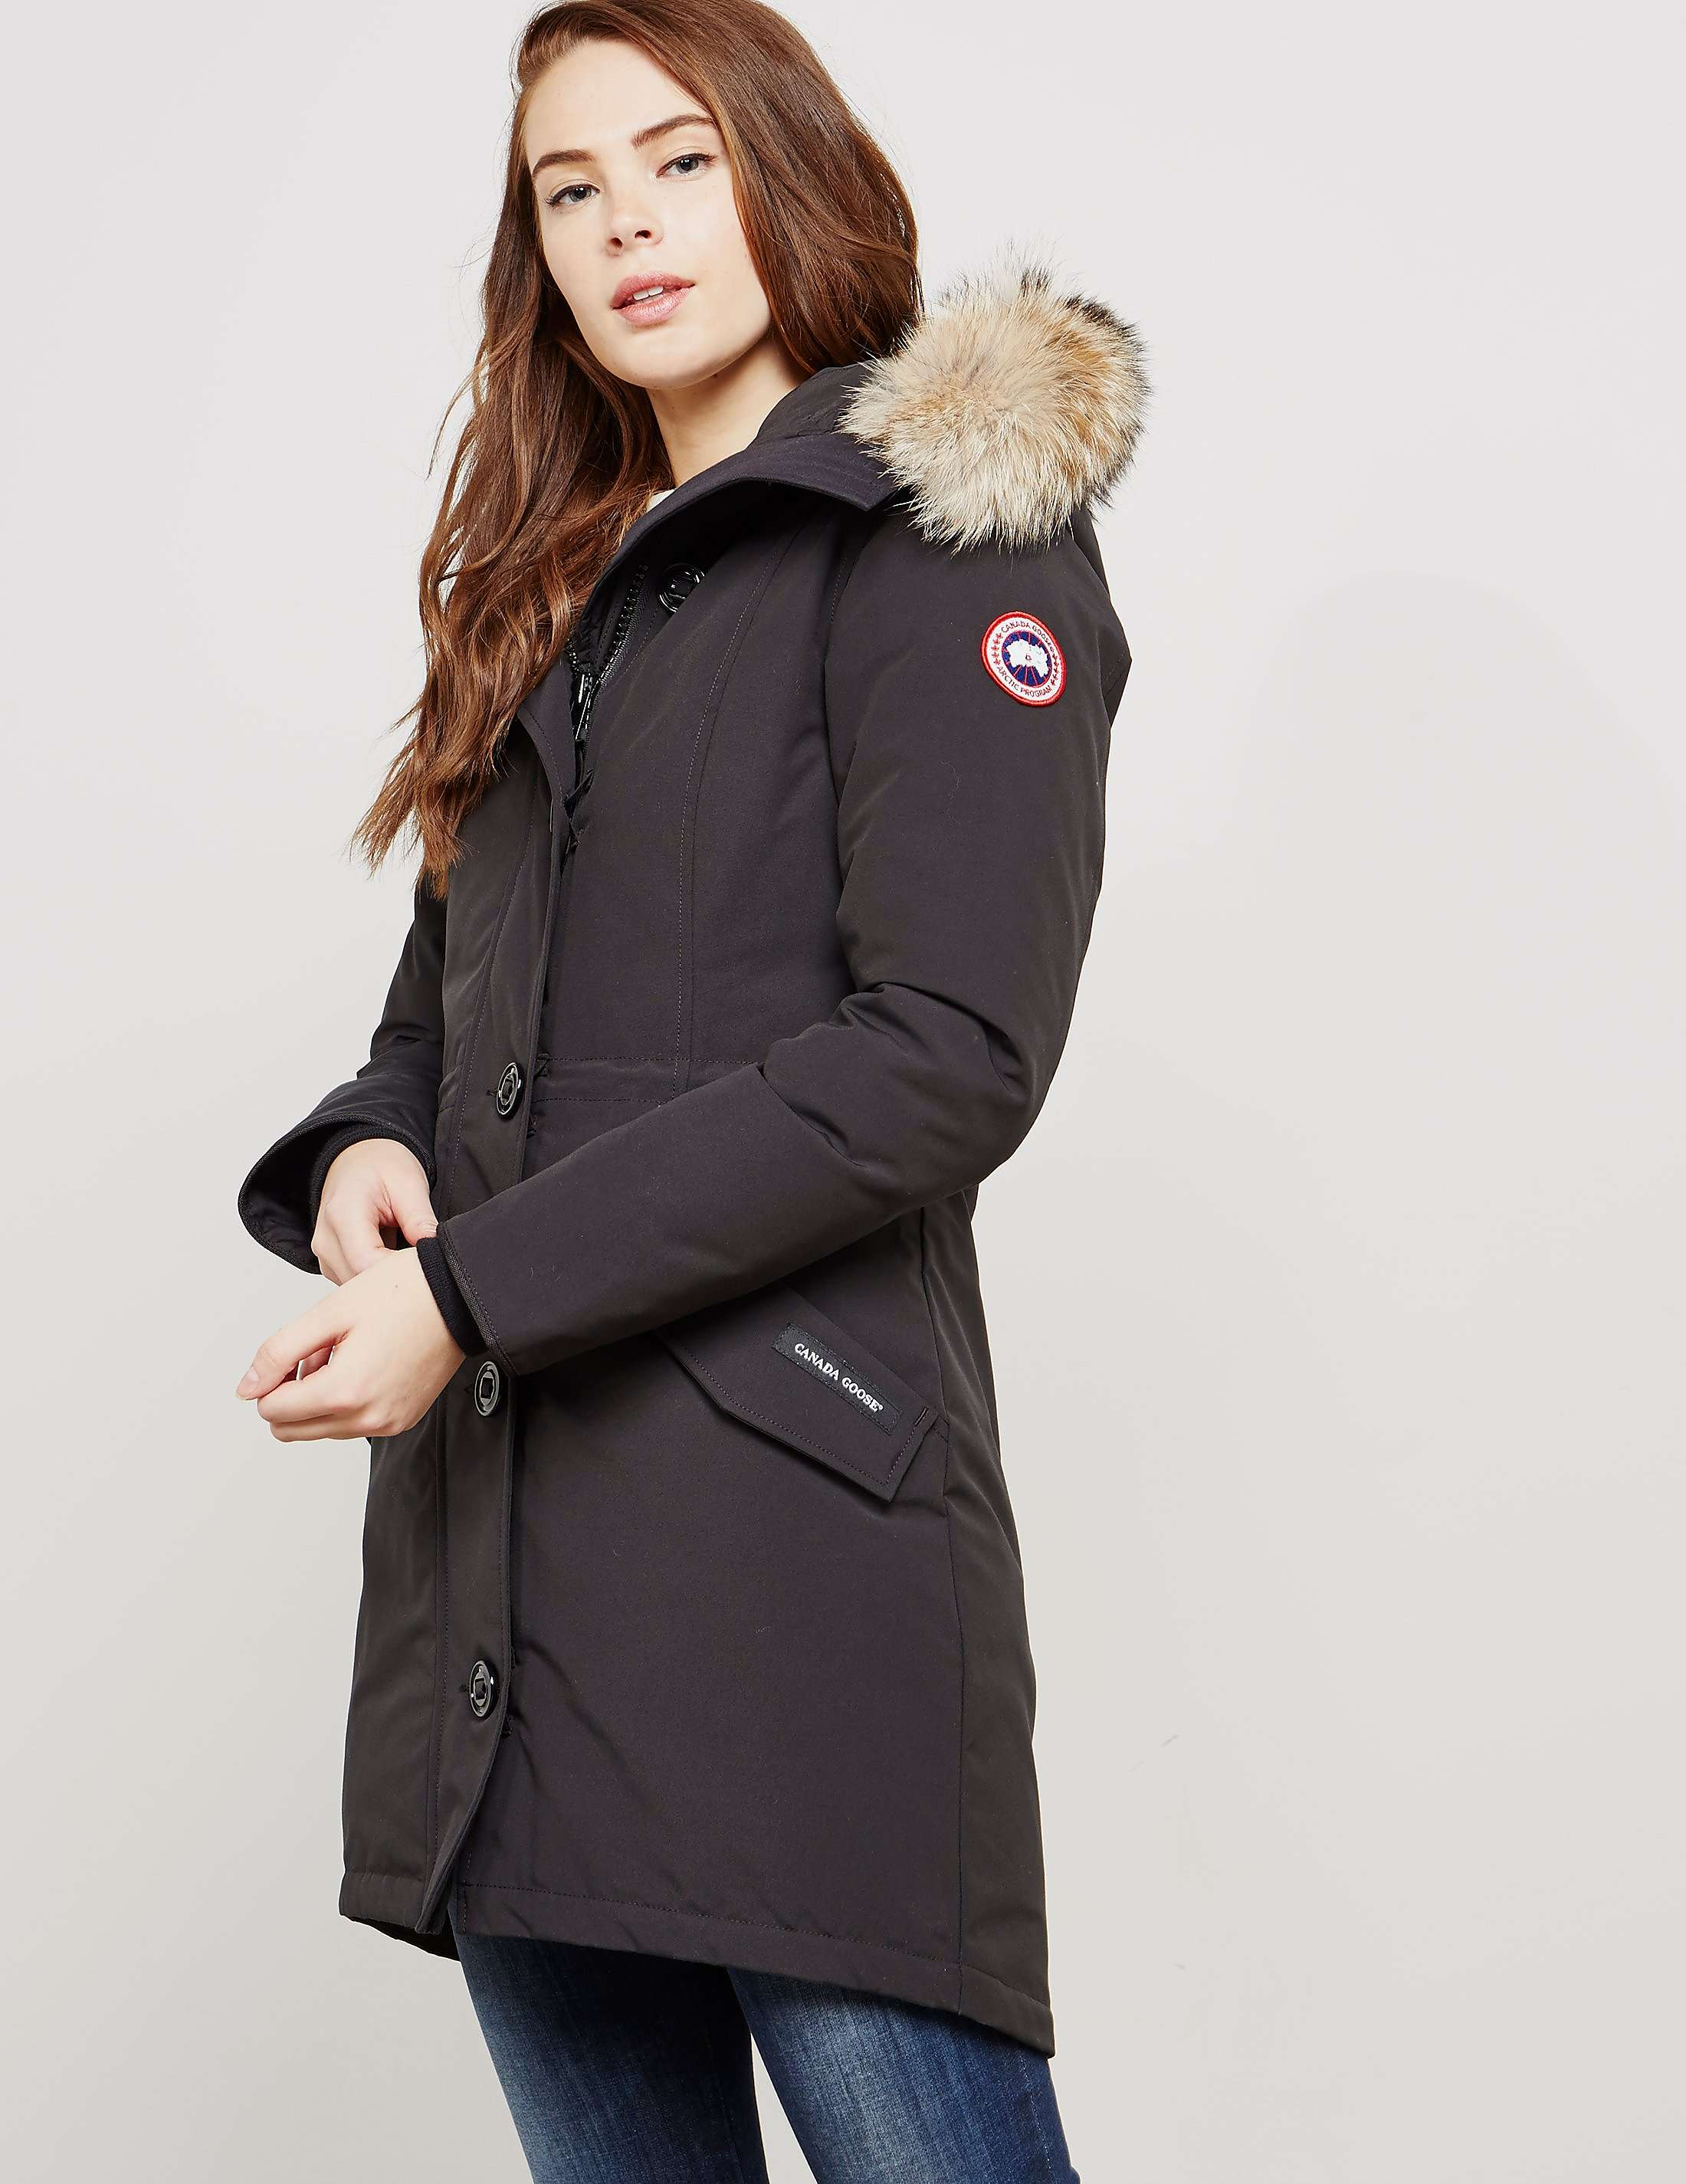 Free shipping on women's jackets on sale at lidarwindtechnolog.ga Shop the best brands on sale at lidarwindtechnolog.ga Totally free shipping & returns.